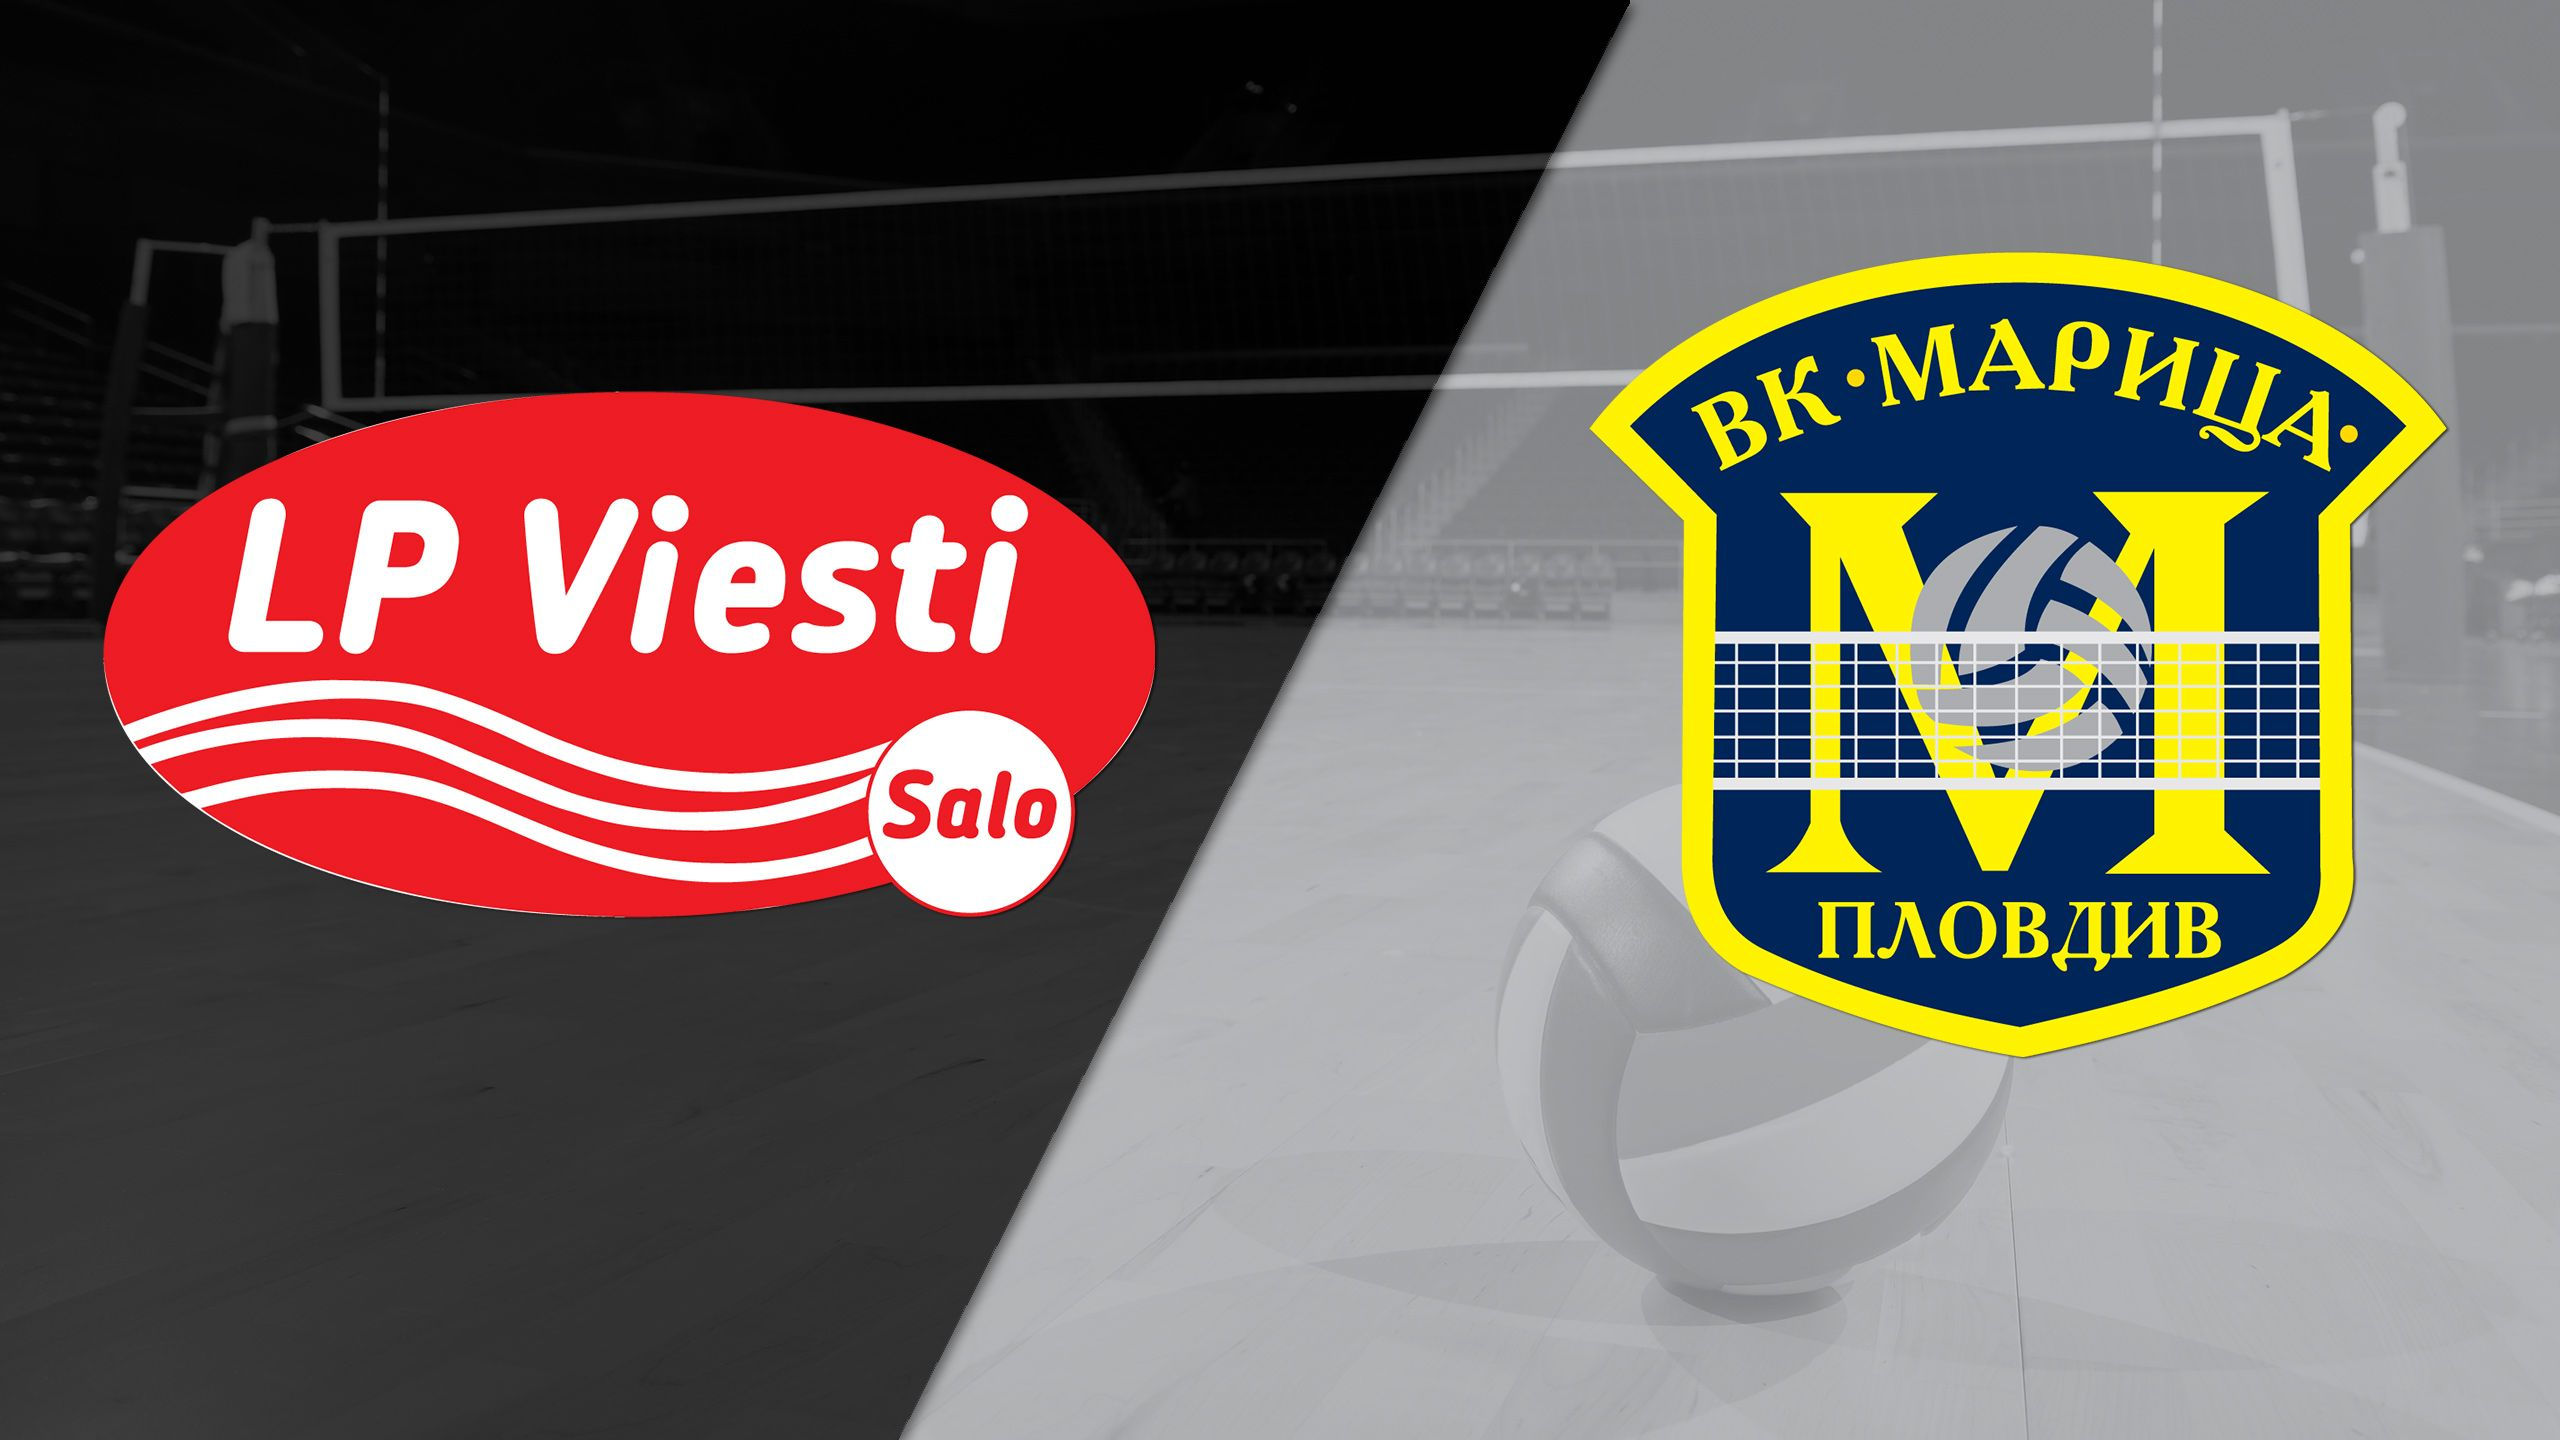 LP SALO vs. Maritza Plovdiv (CEV Women's Champions League)